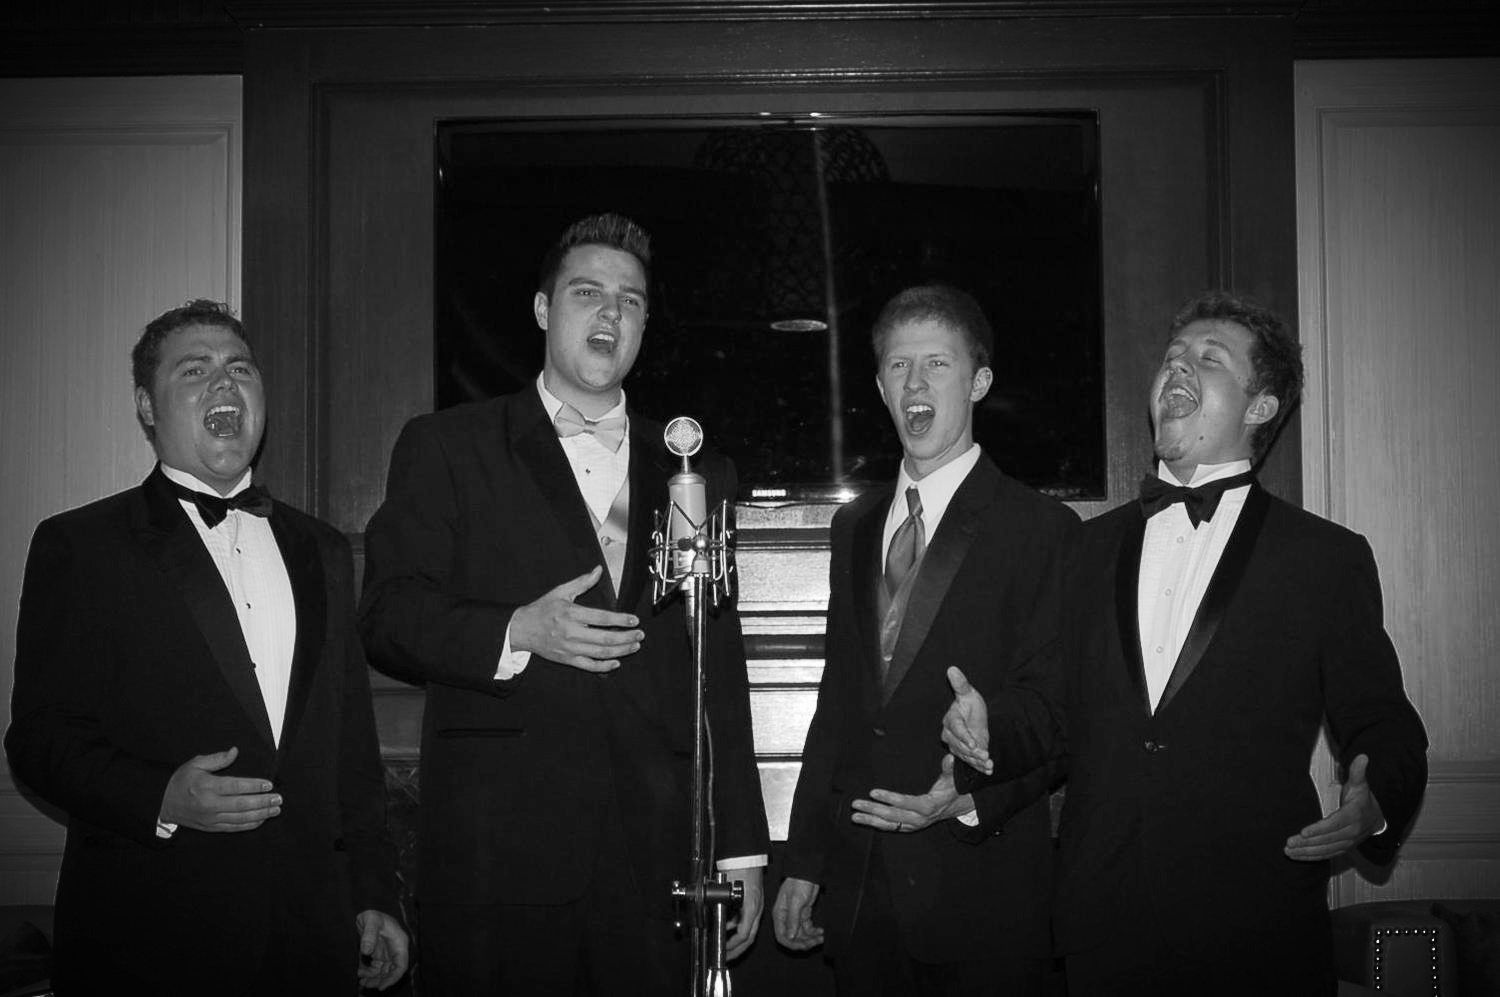 Derrek Wayne (far right) holds a high note with his a cappella quartet on Celebrity Cruises in 2012.